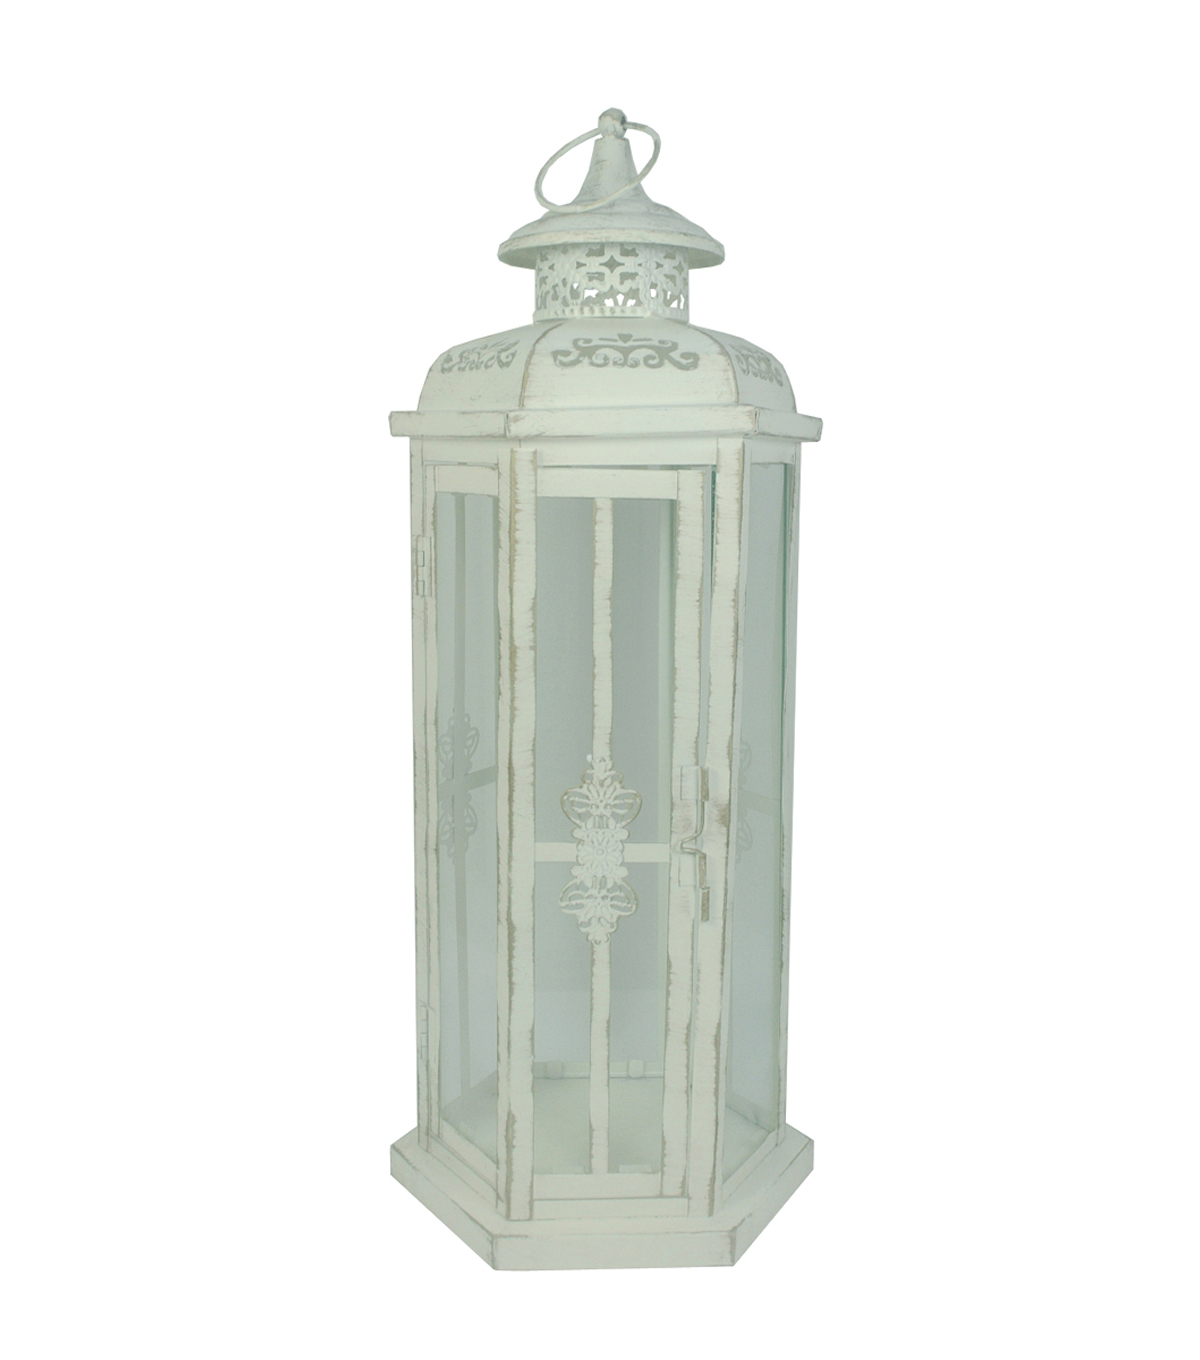 Hudson 43™ Candle & Light Collection Distressed Metal Lantern White Lg